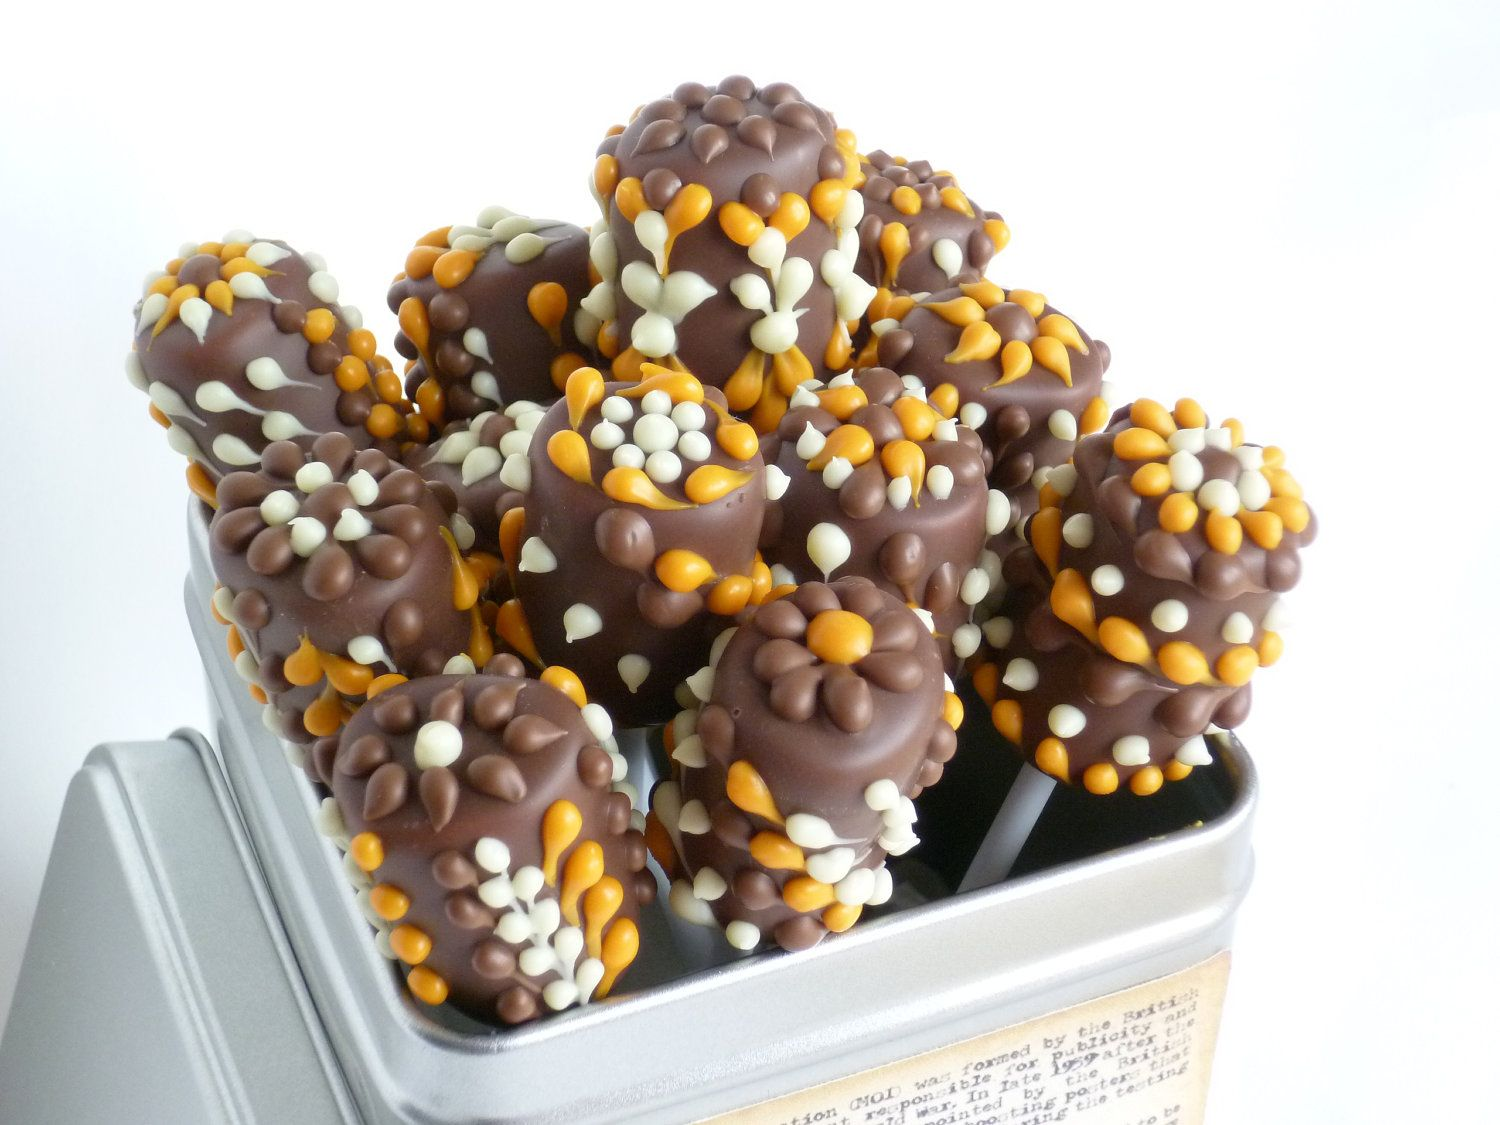 Or these...apparently these are called Carla Lollipops...got to have them!